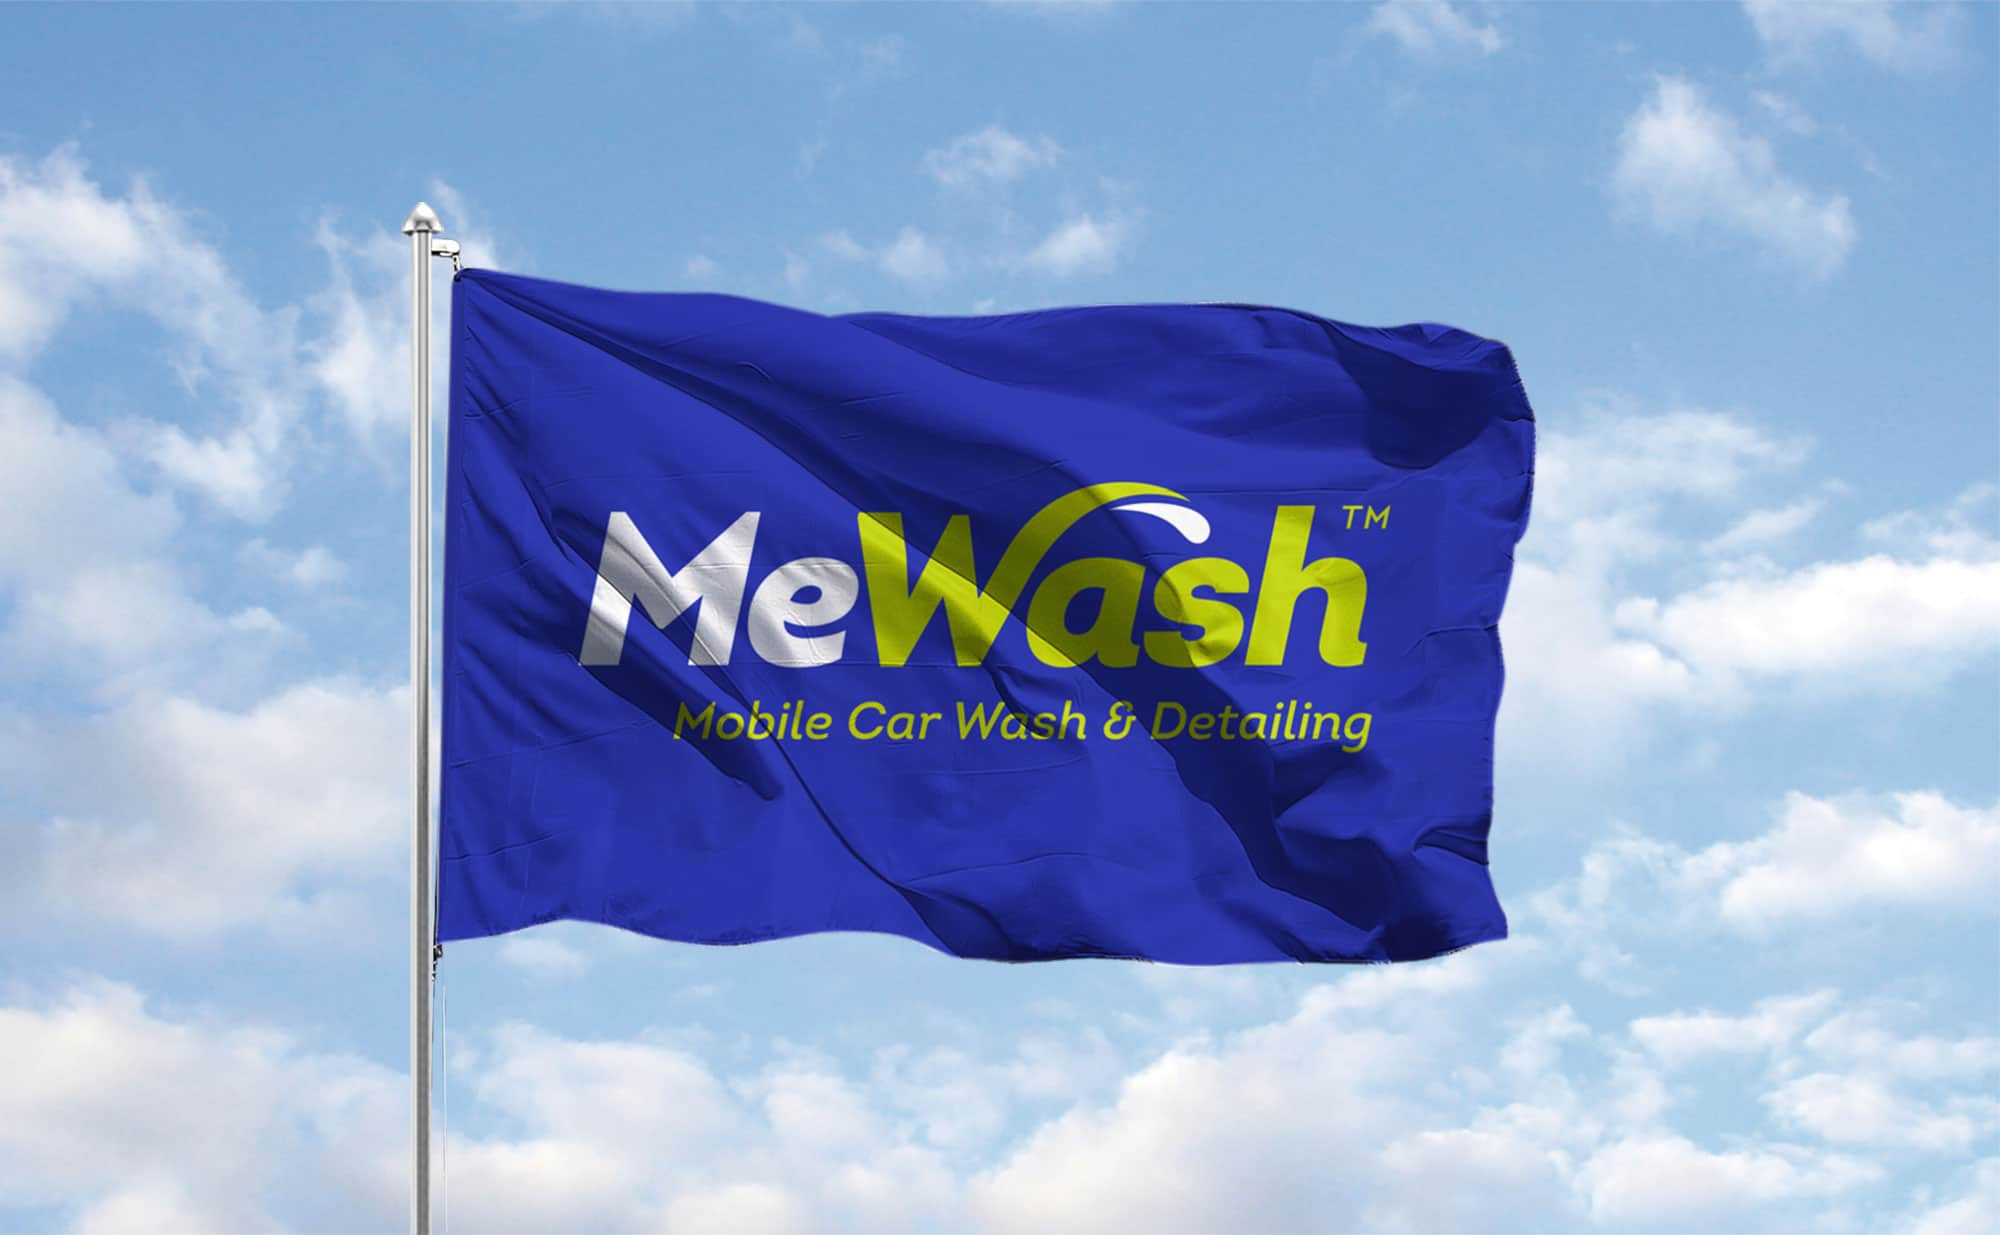 MeWash Flag Design